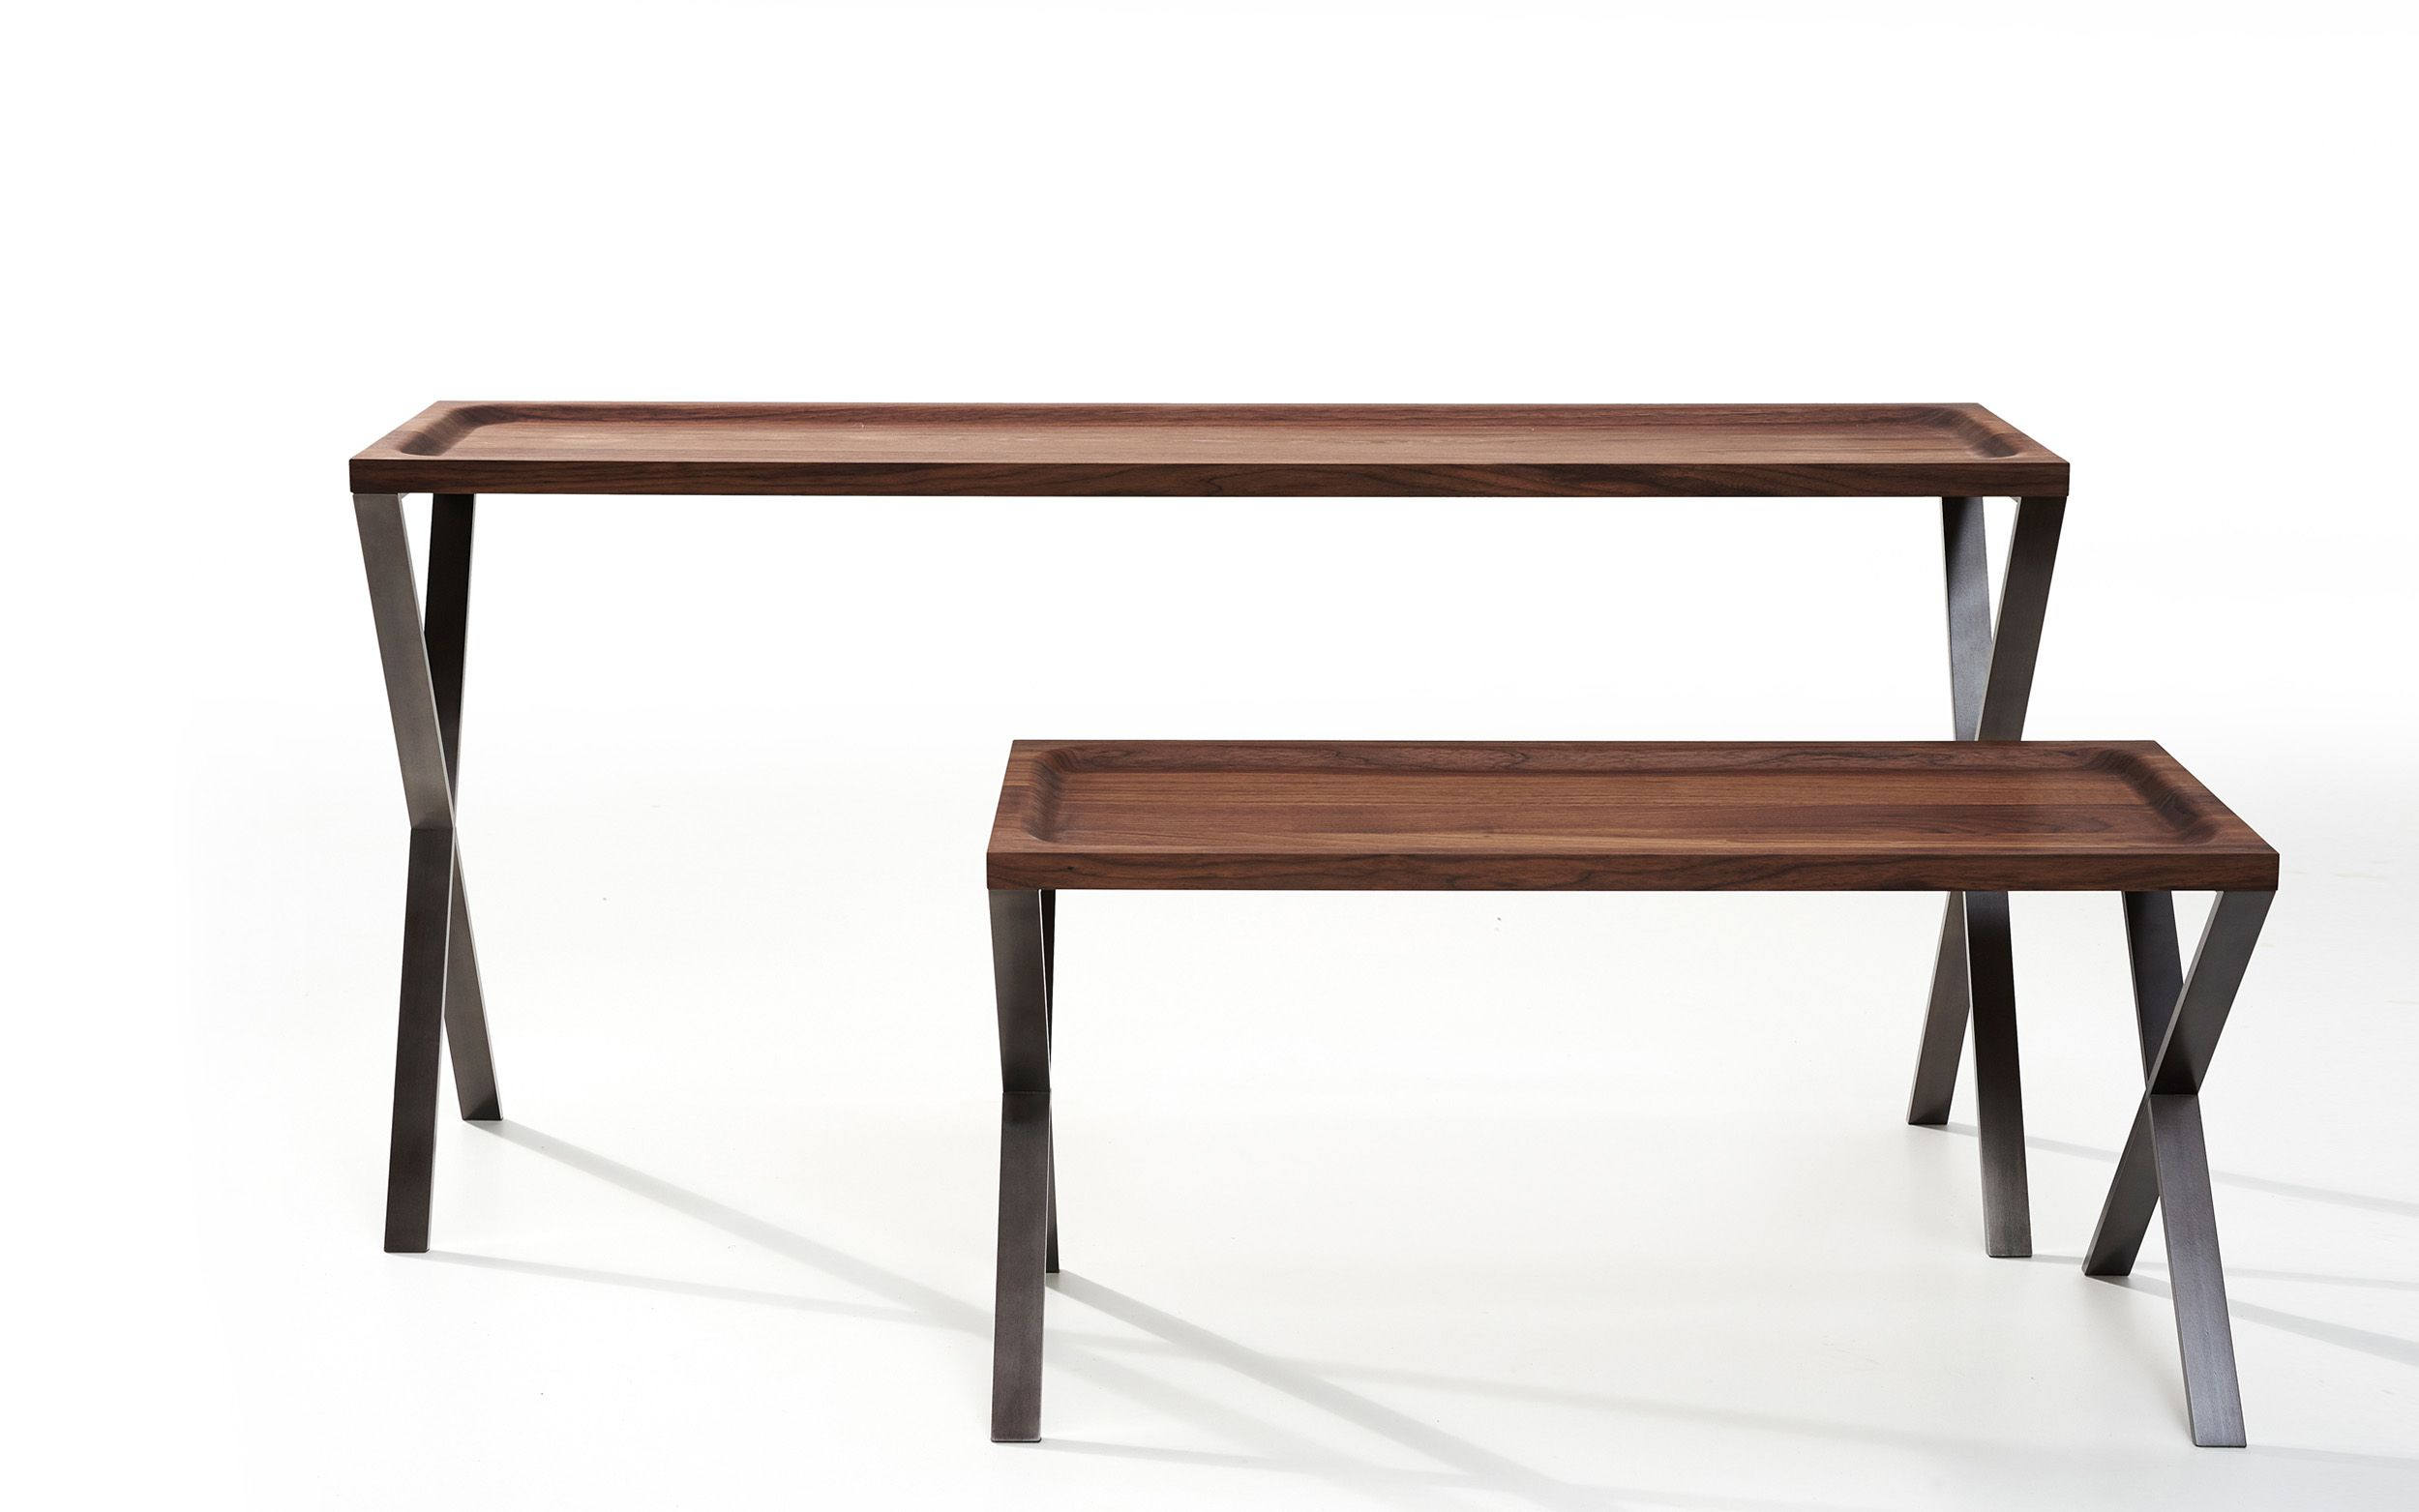 Presented In Walnut With An Anthracite Lacquered Steel Frame Other